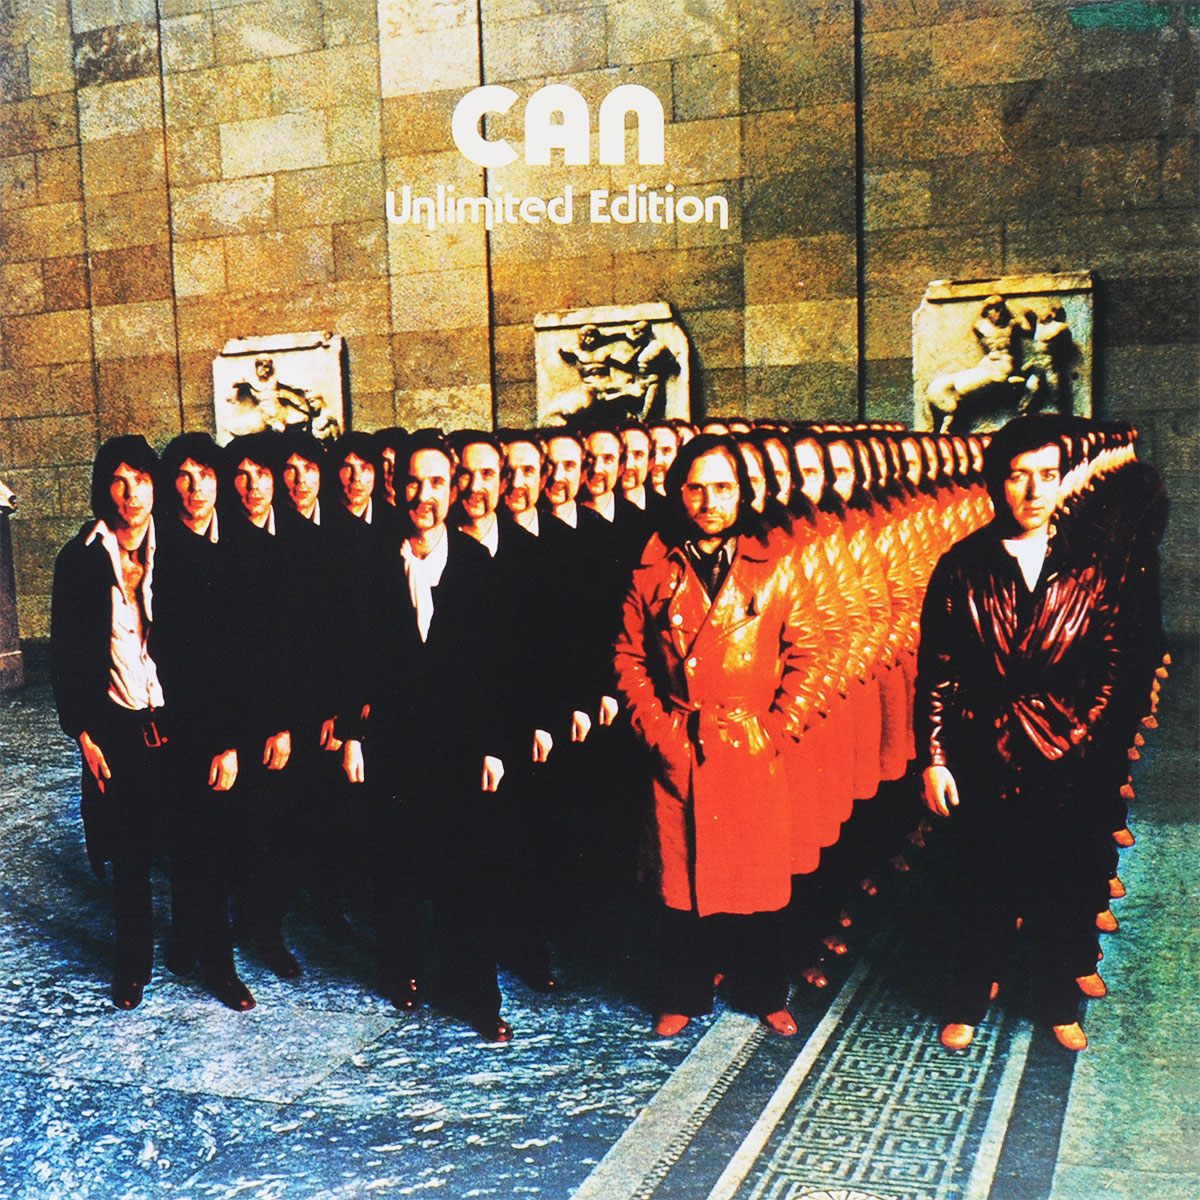 Can Can. Can. Remastered Unlimited Edition (2 LP) environment friendly long handle a soup spoon